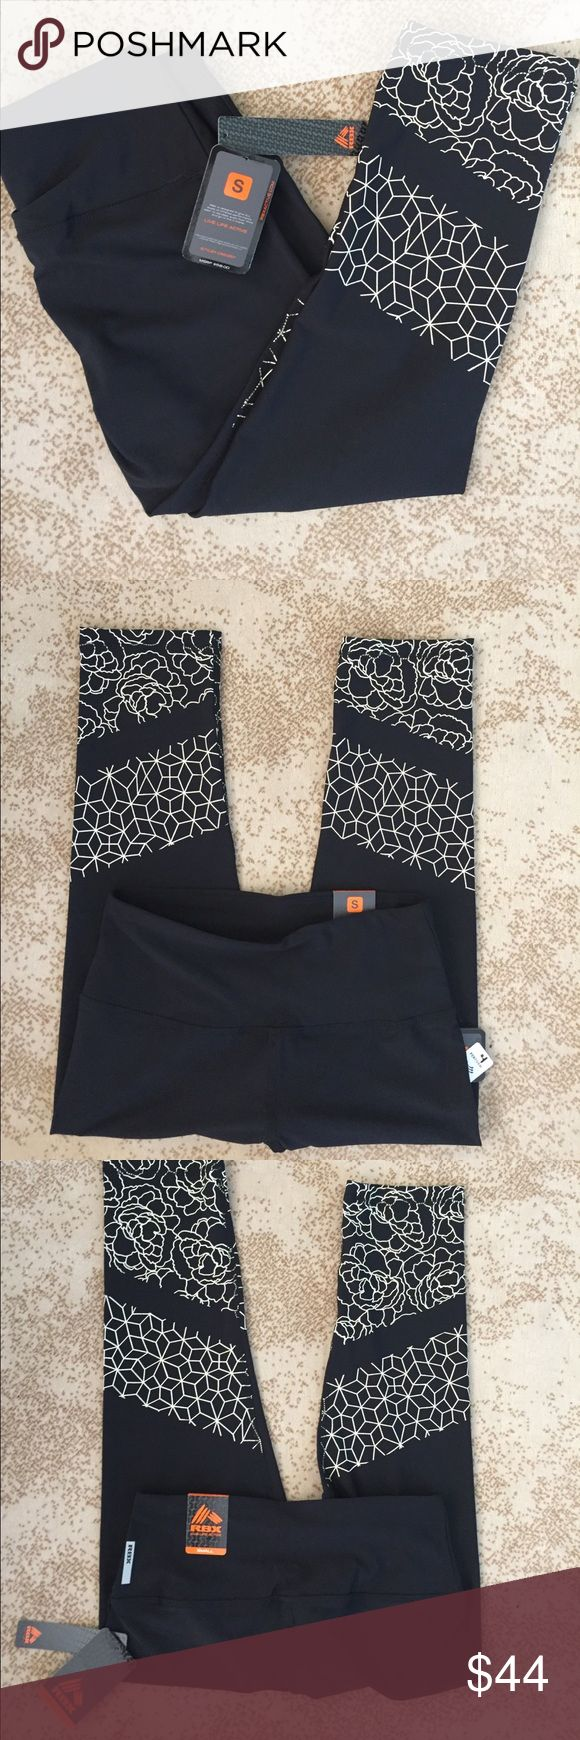 NWT RBX size Small workout/yoga pants NWT size Small workout/yoga pants- Can be worn for any type of exercise. All black with cream flower design on the lower part. Capri length, stretch, fade resistant. Retail for $58. Ramona from the Housewives of NYC wore them this season during her personal trainer  scene. RBX Pants